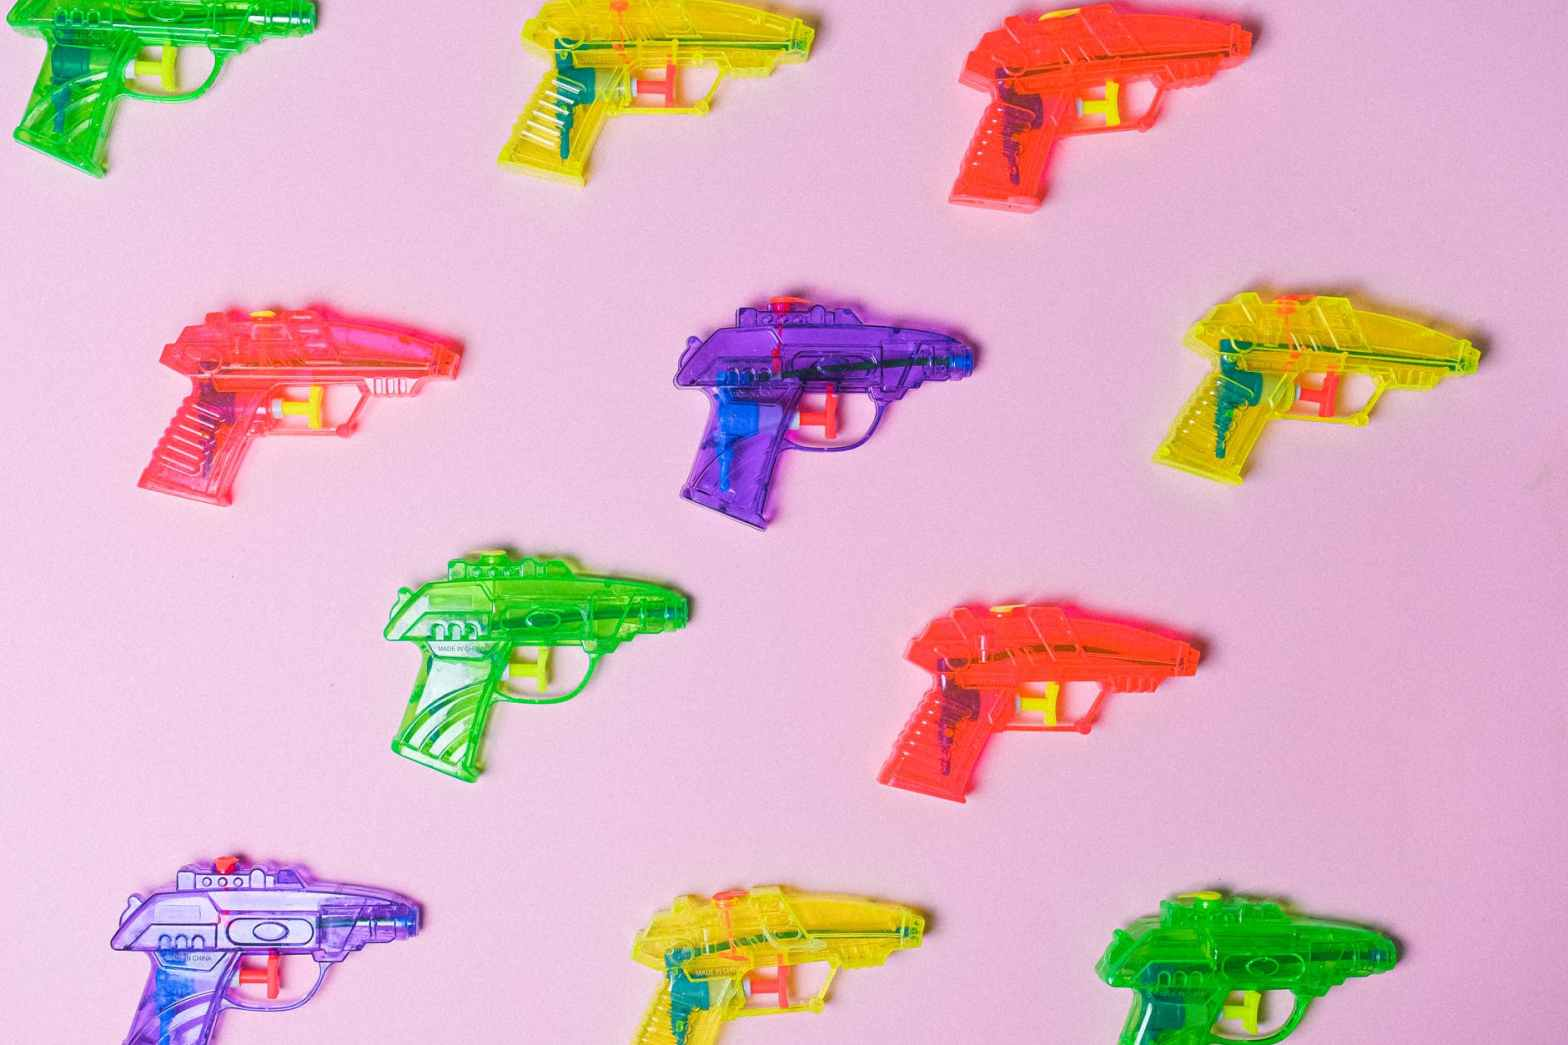 assortment of colorful guns for game